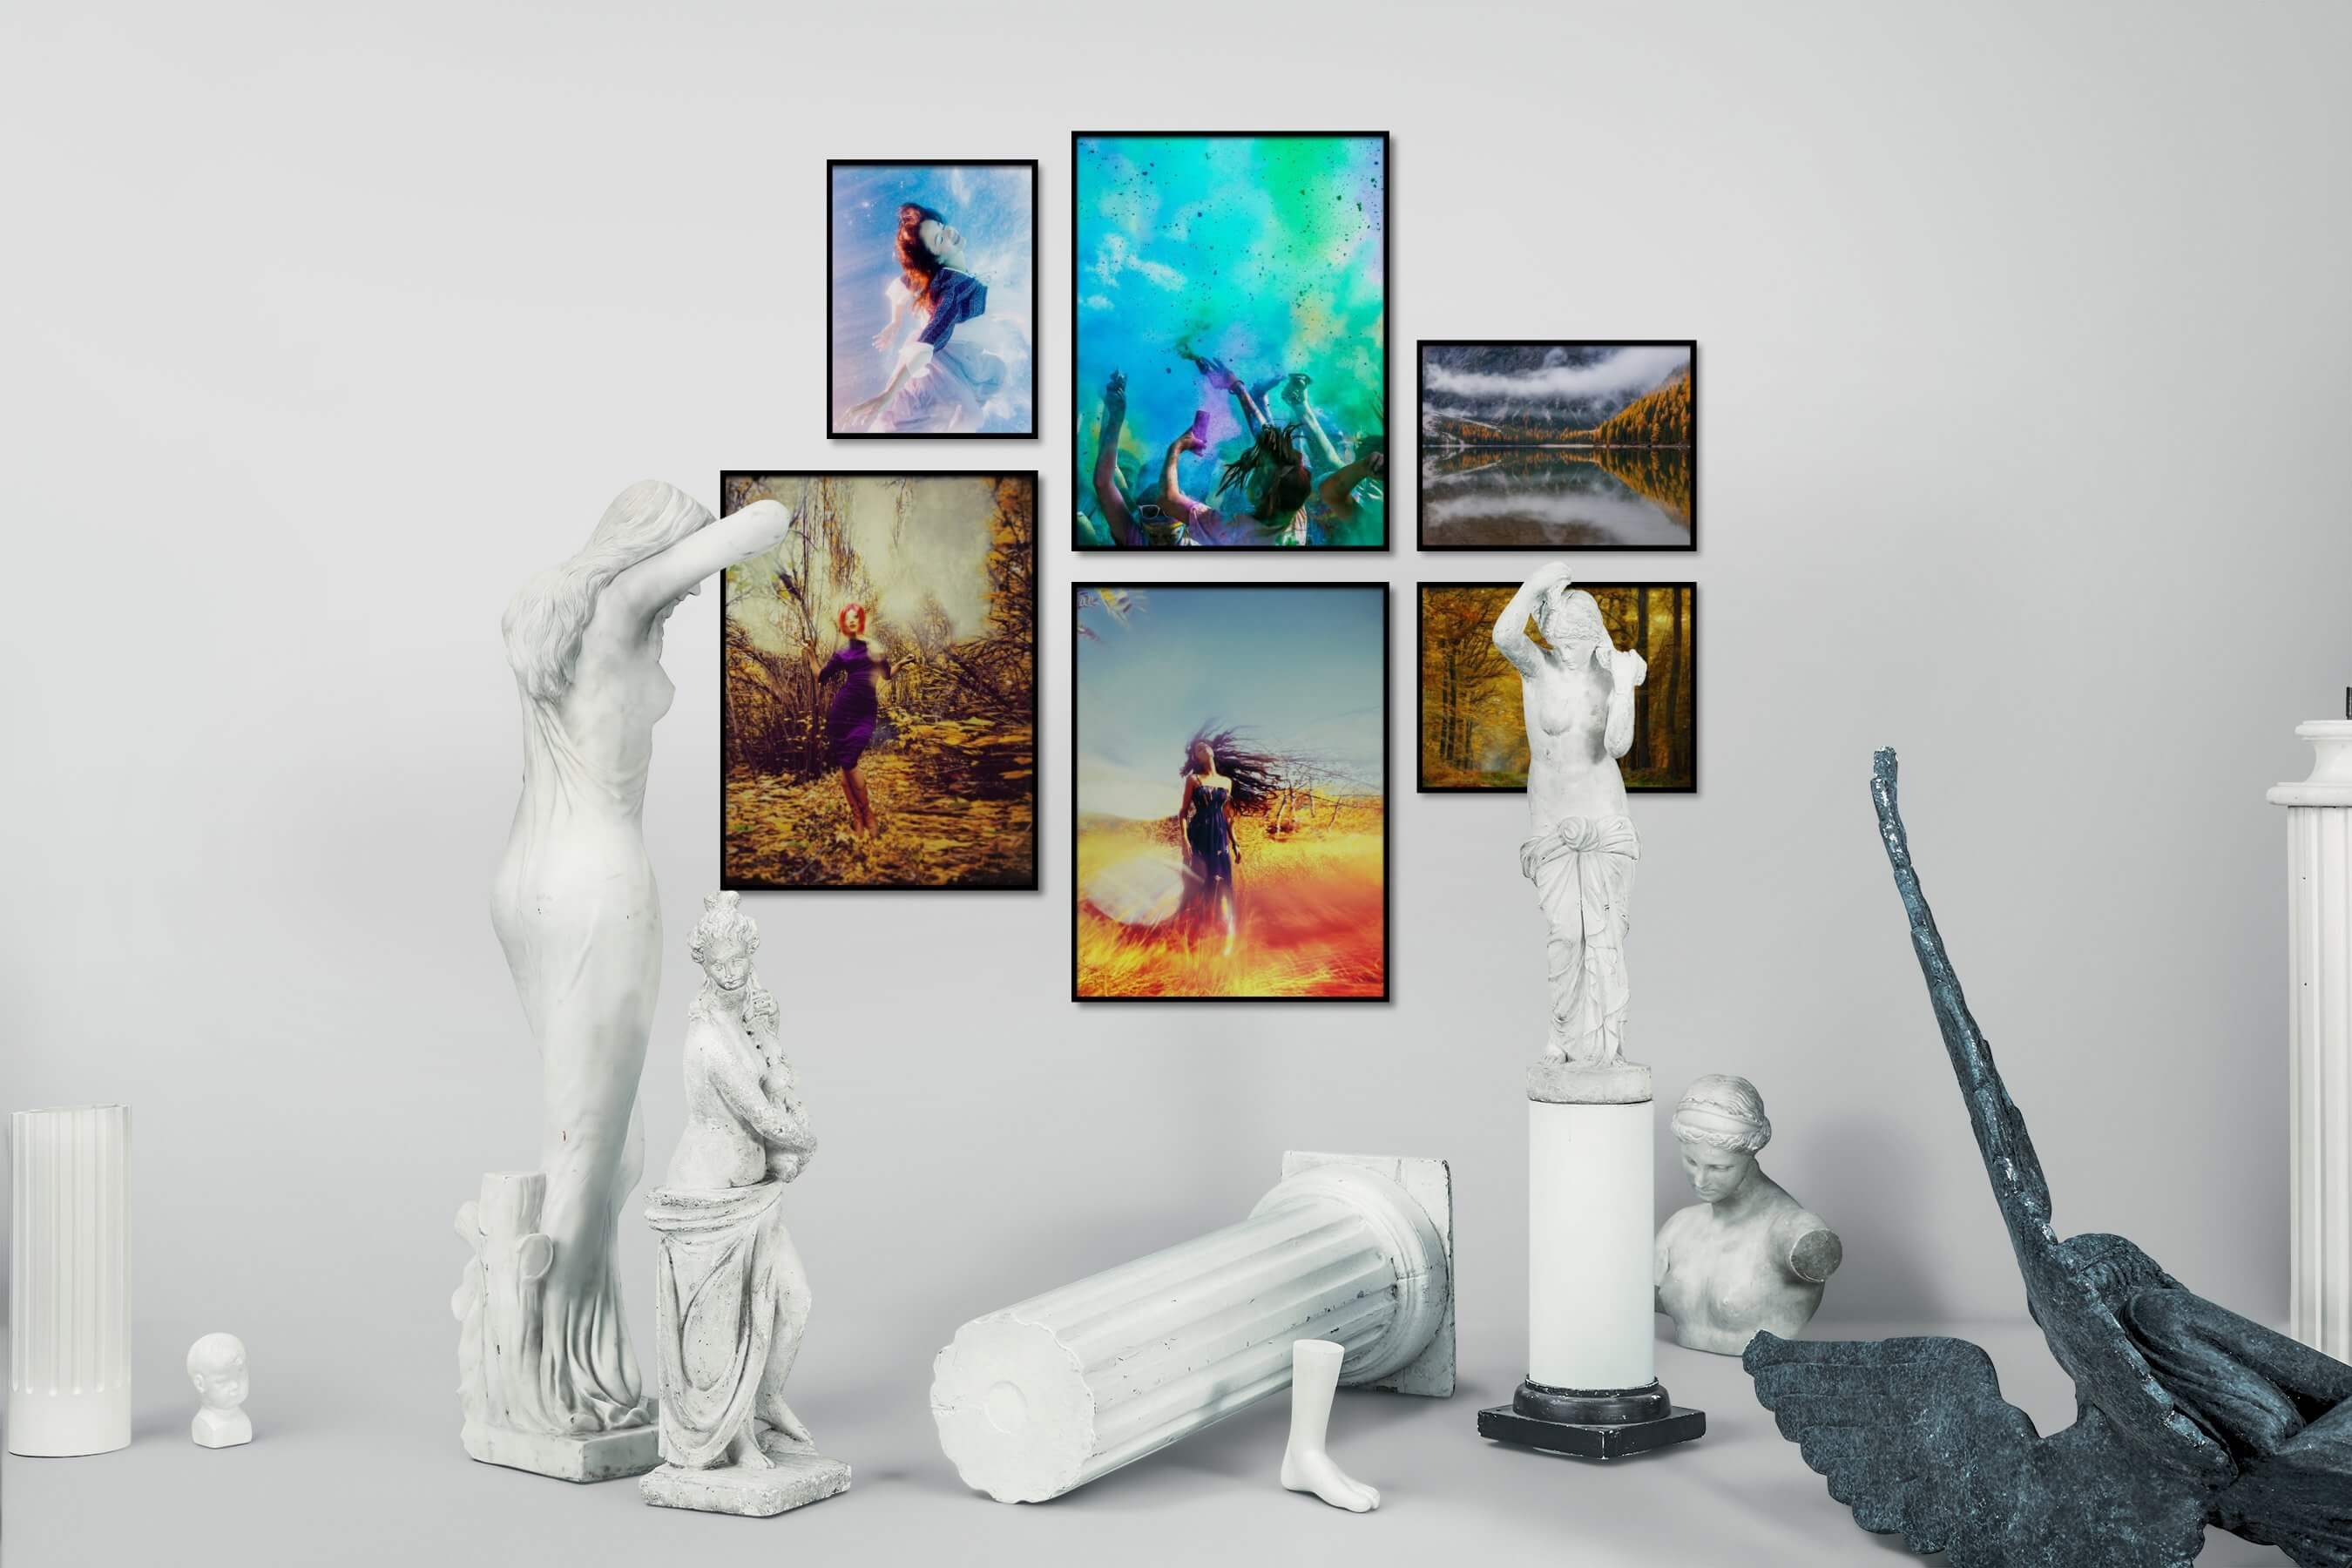 Gallery wall idea with six framed pictures arranged on a wall depicting Fashion & Beauty, Beach & Water, Colorful, For the Moderate, Artsy, and Nature